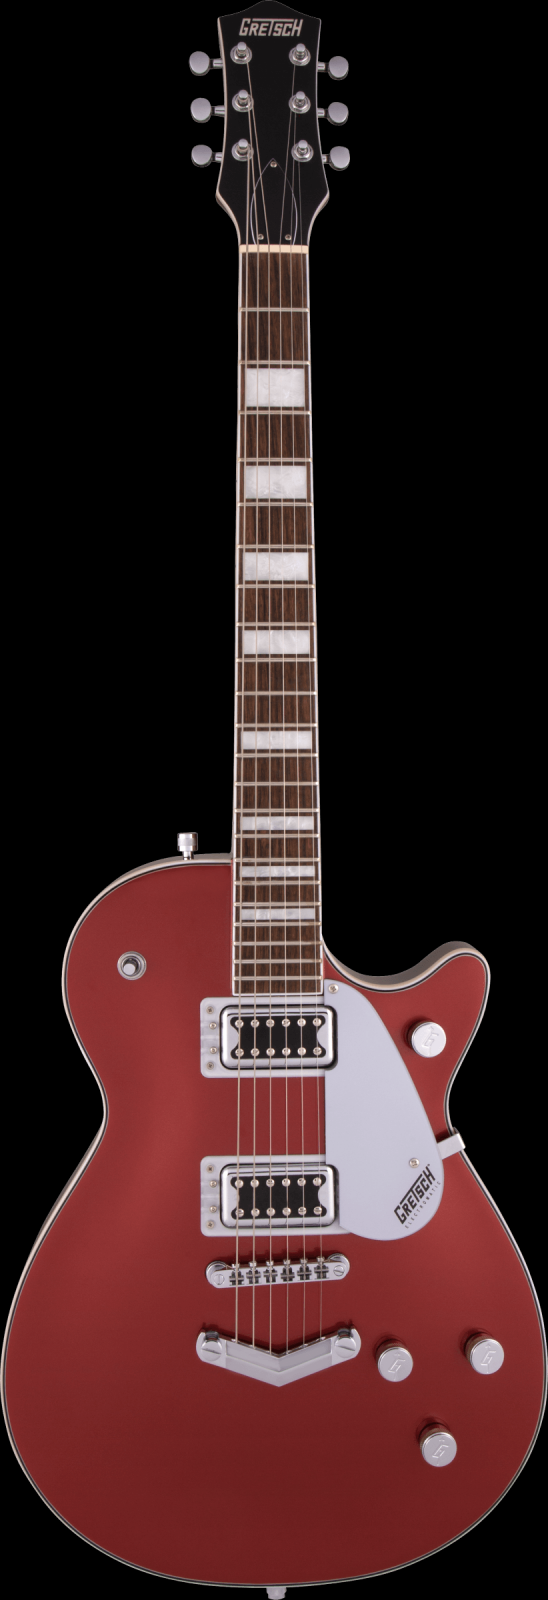 Gretsch G5220 Electromatic Jet BT Single-Cut with V-Stoptail Laurel Fingerboard Firestick Red